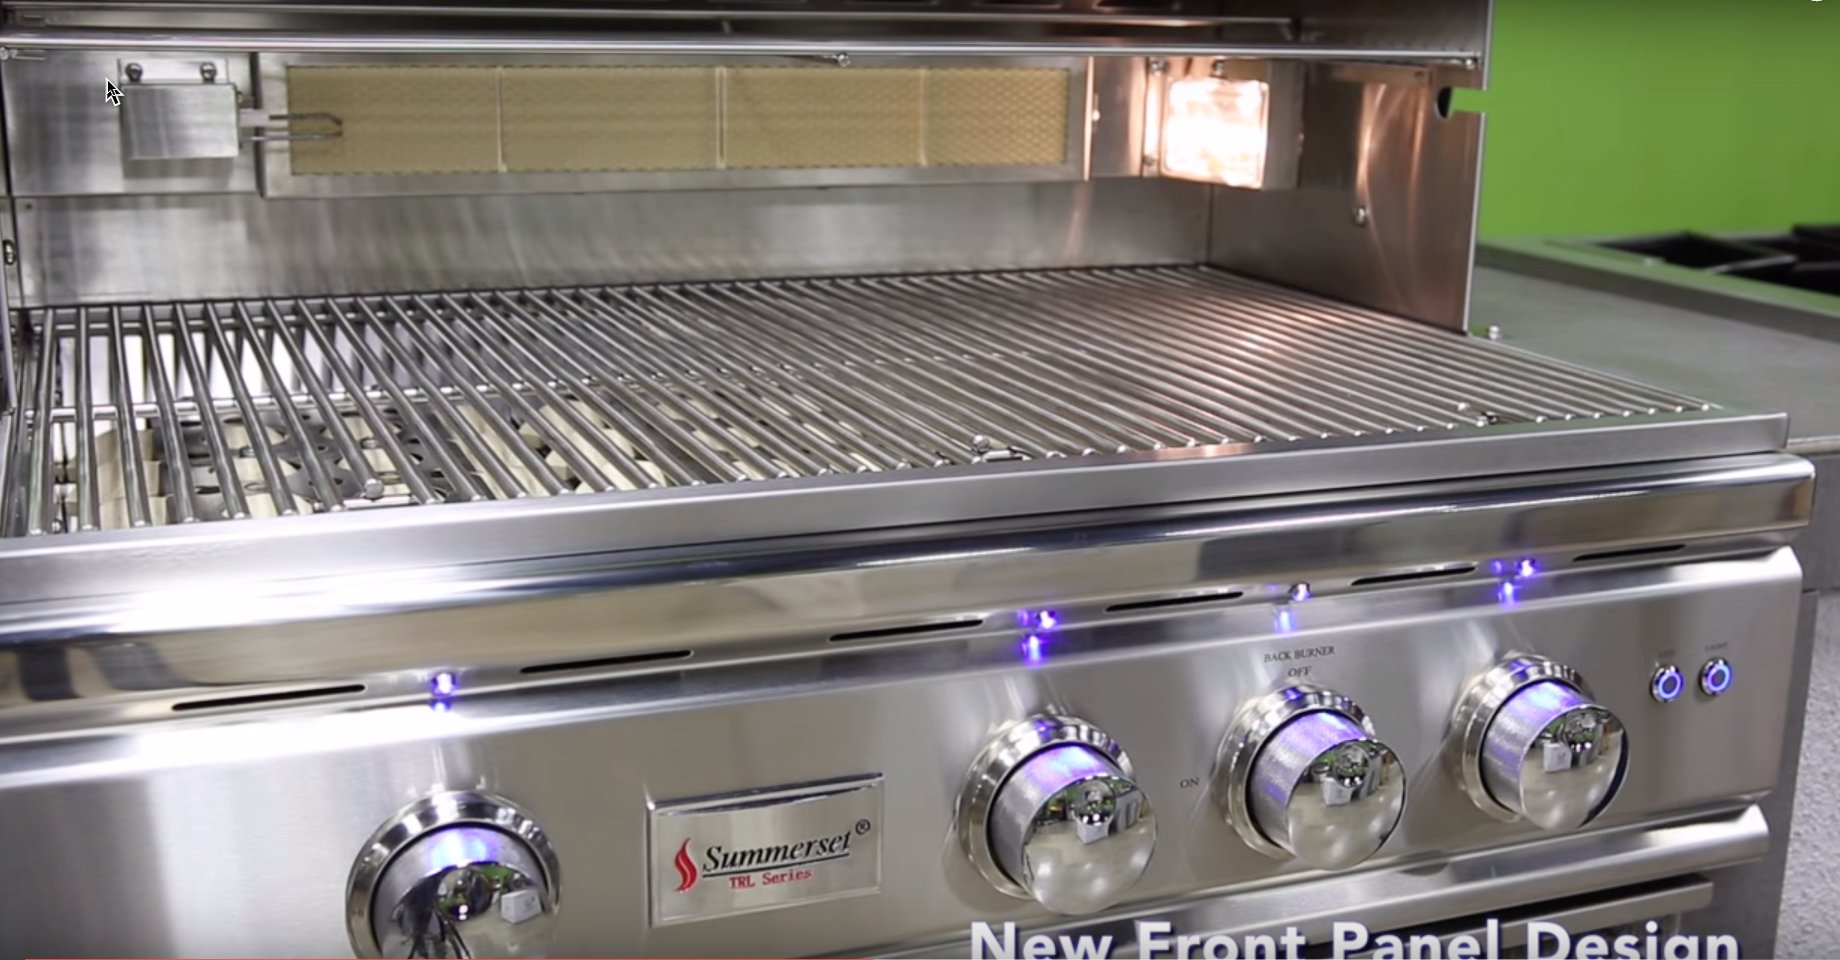 Summerset Trld 32 Quot Built In Grill Deluxe Stainless Steel